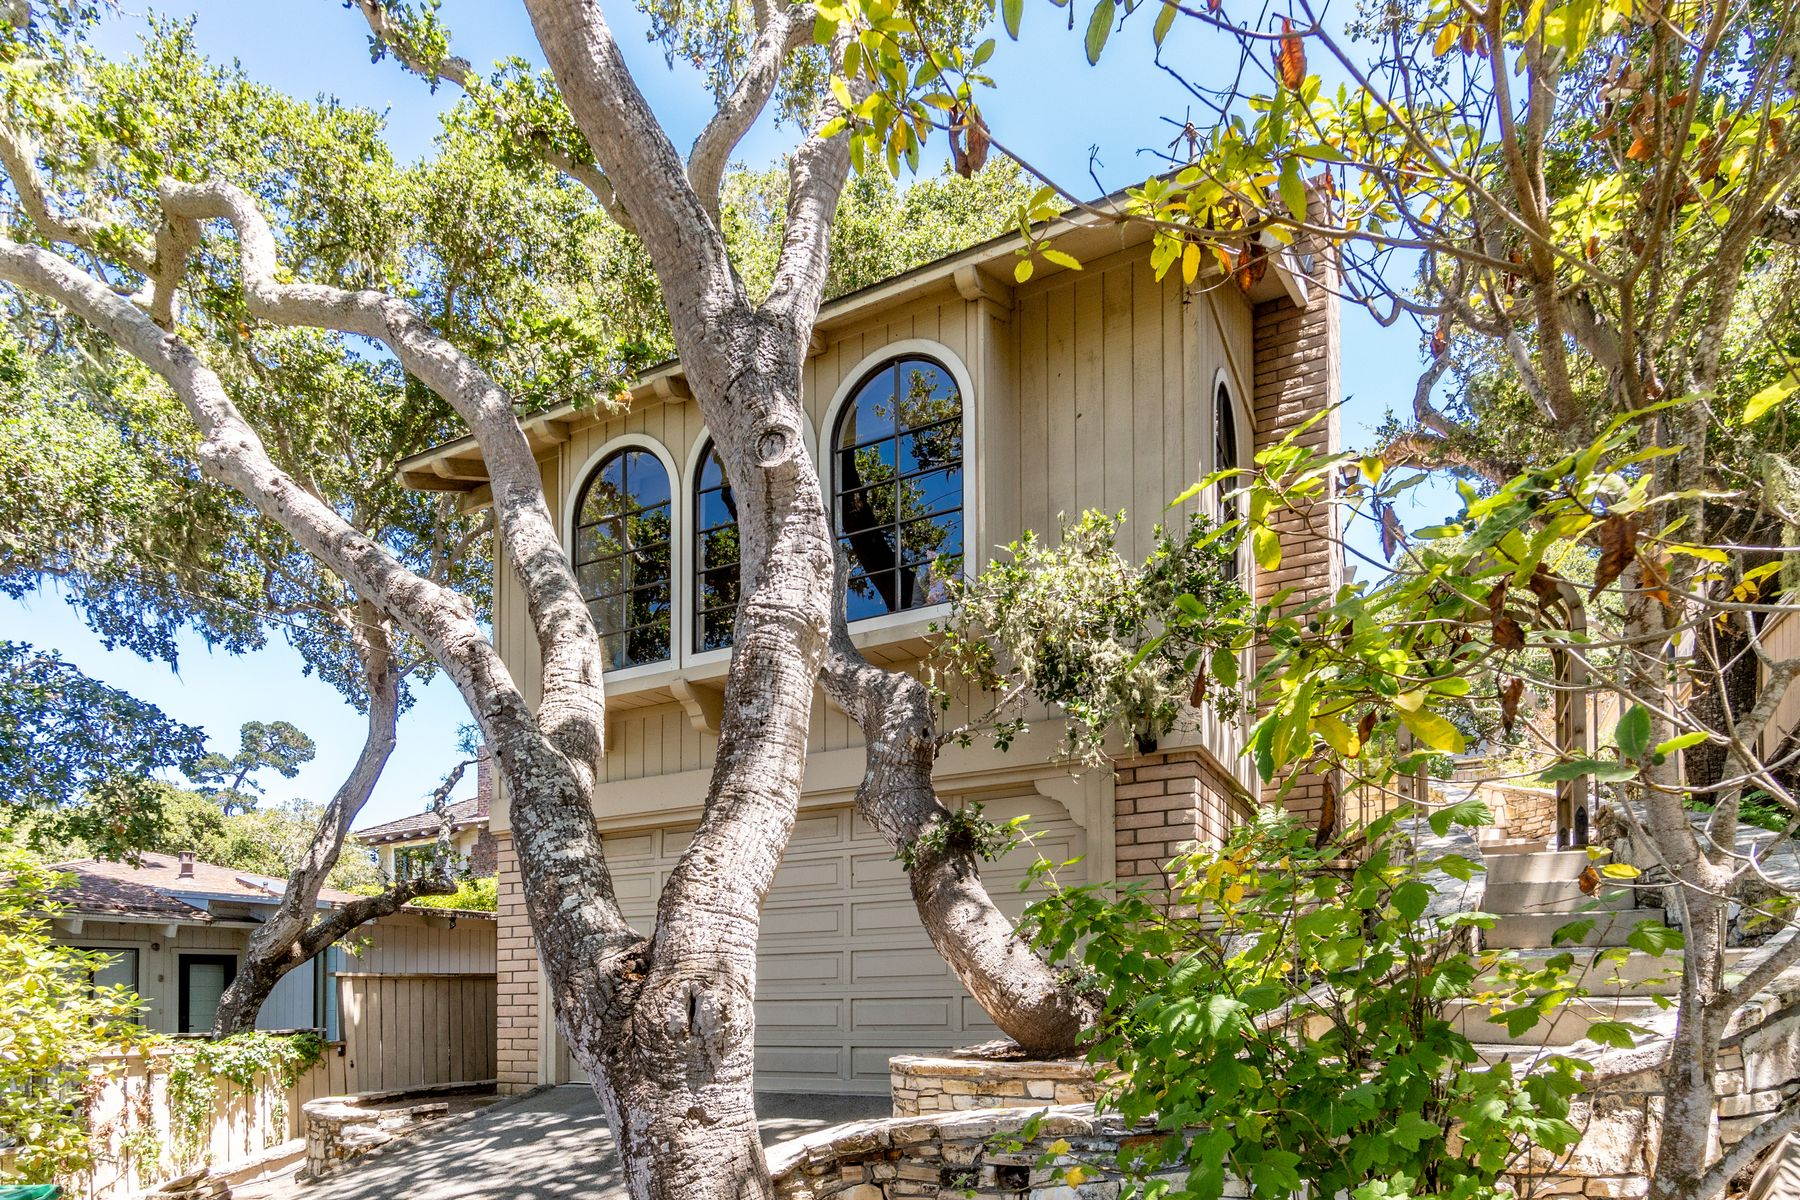 Single Family Homes for Sale at Vintage Carmel Charm Casanova 6 Se Of 4th Carmel By The Sea, California 93921 United States